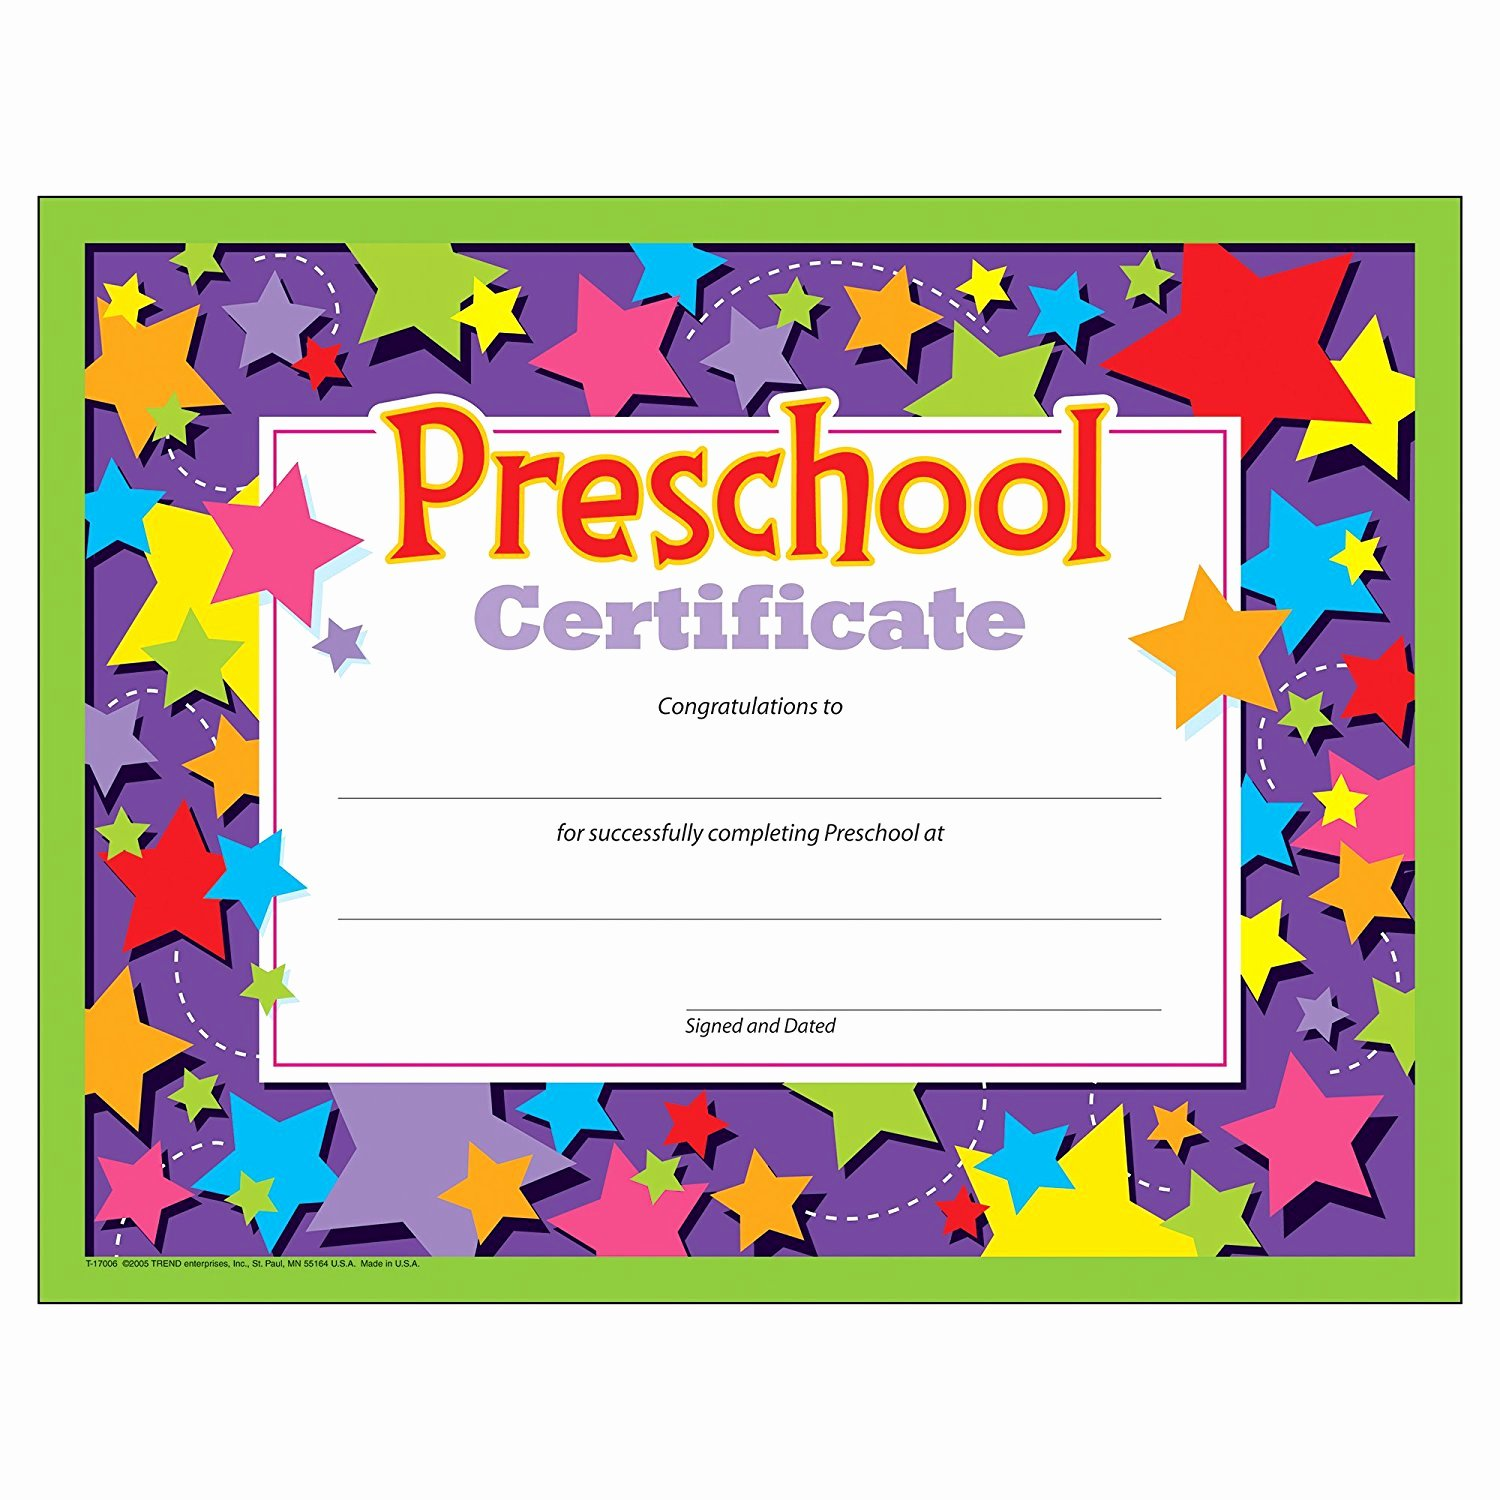 Preschool Certificate Of Completion Best Of Preschool Graduation Certificate 30 Count Ctt Graphics